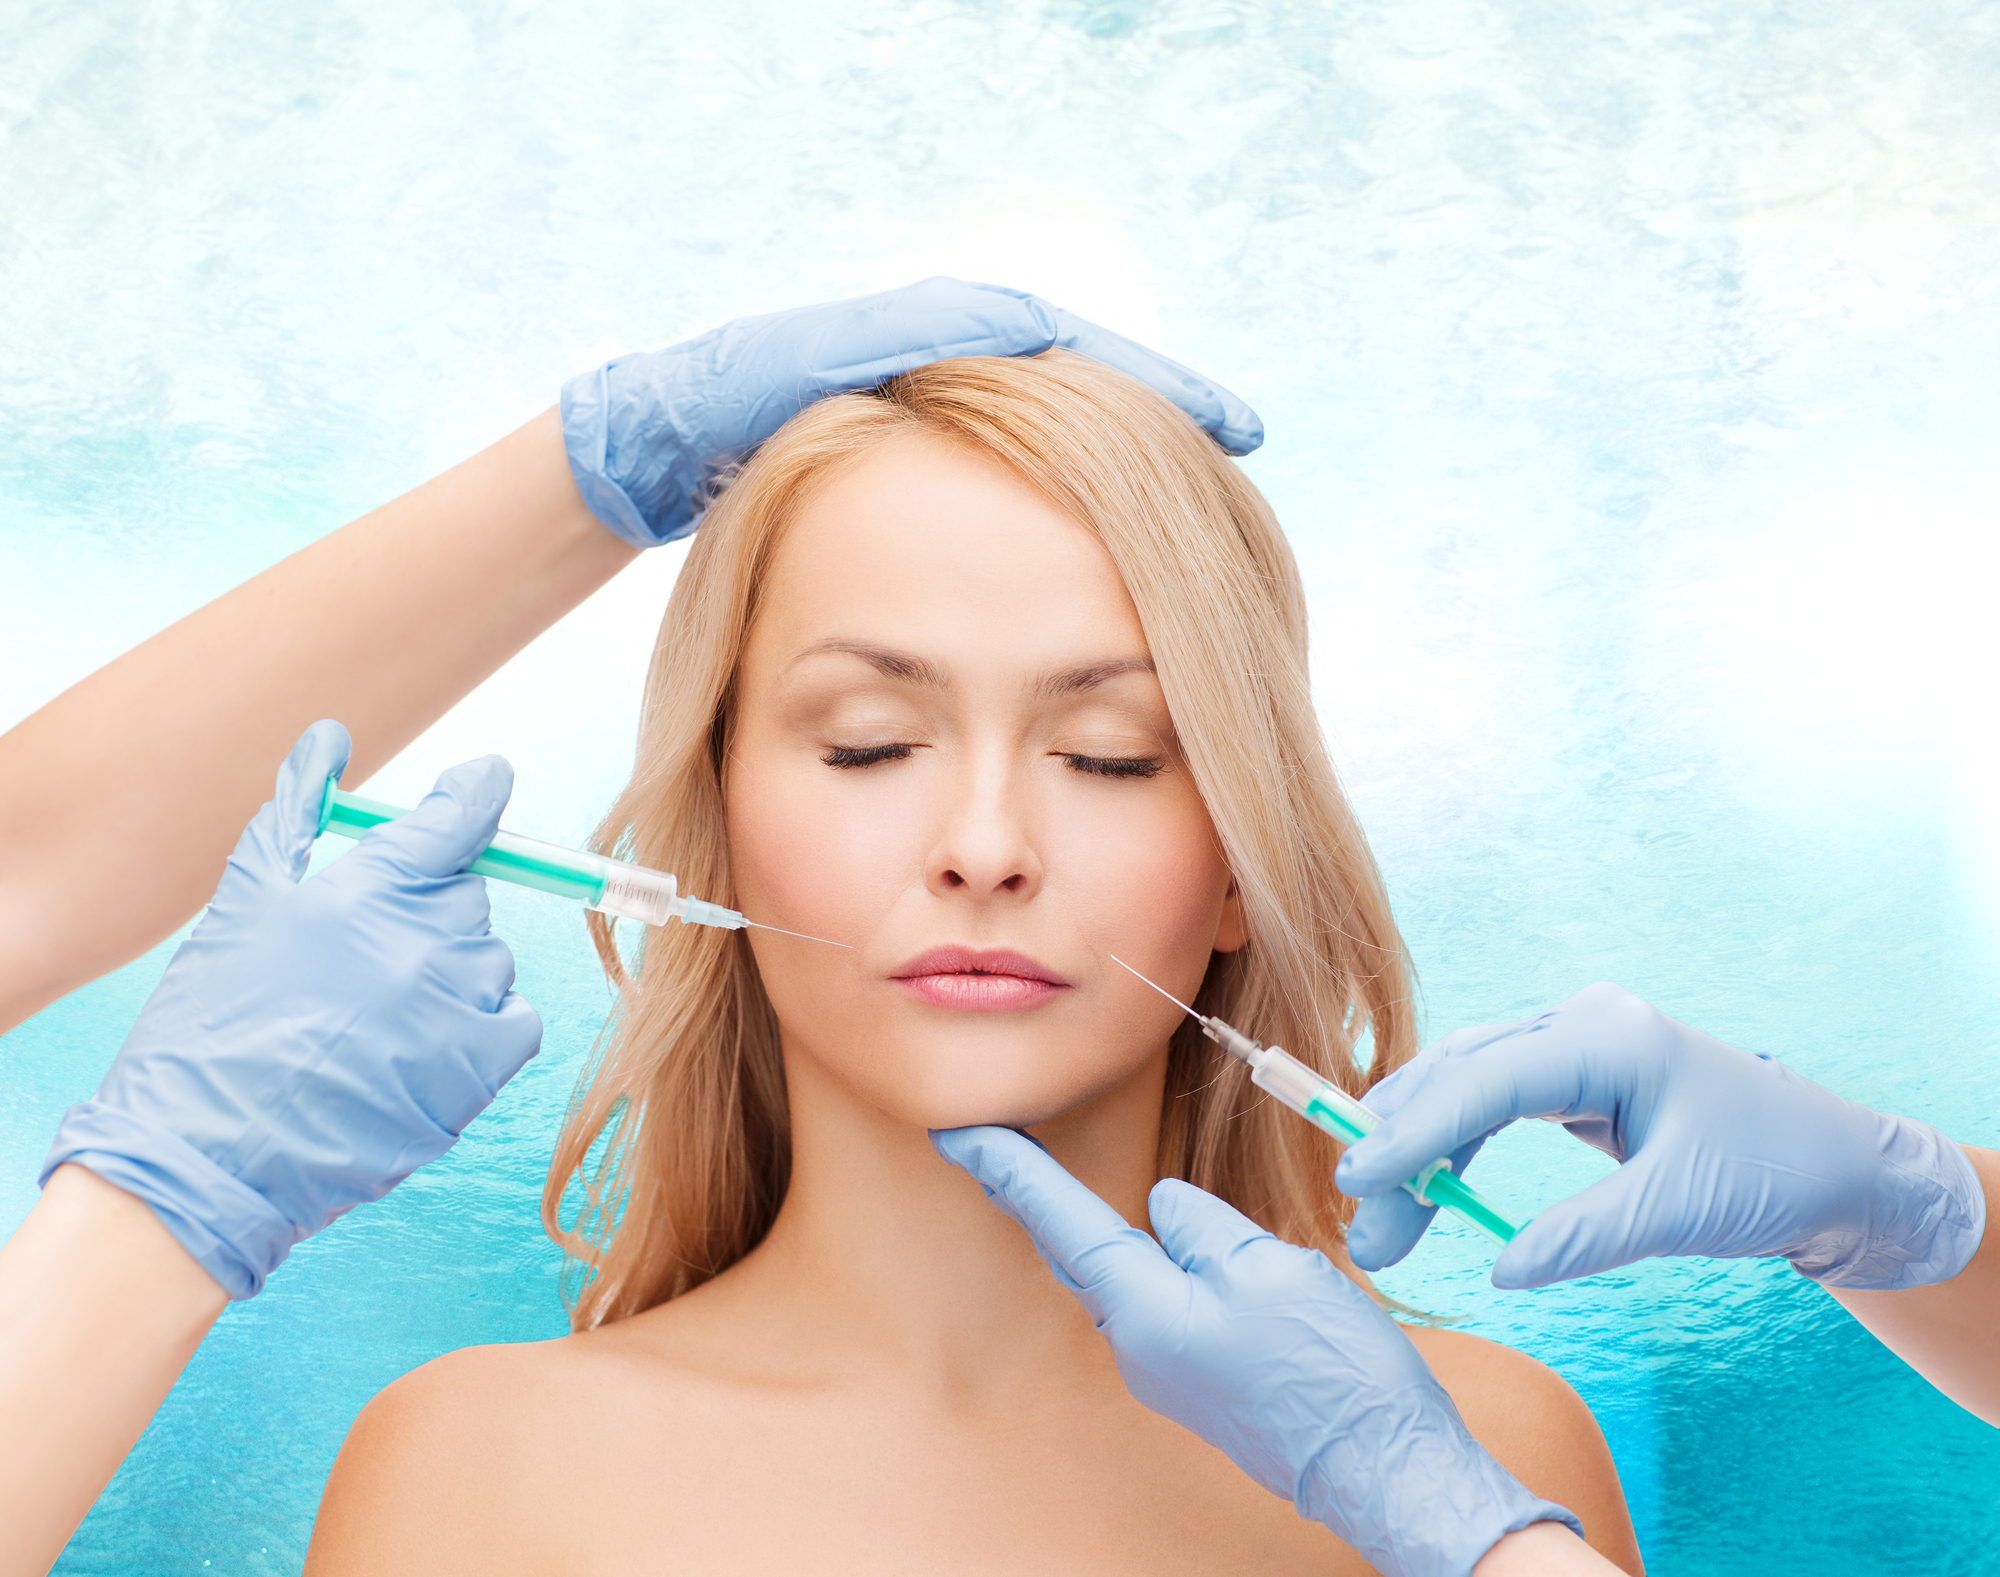 beauty and cosmetic surgery concept - woman with closed eyes and beautician hands with syringes